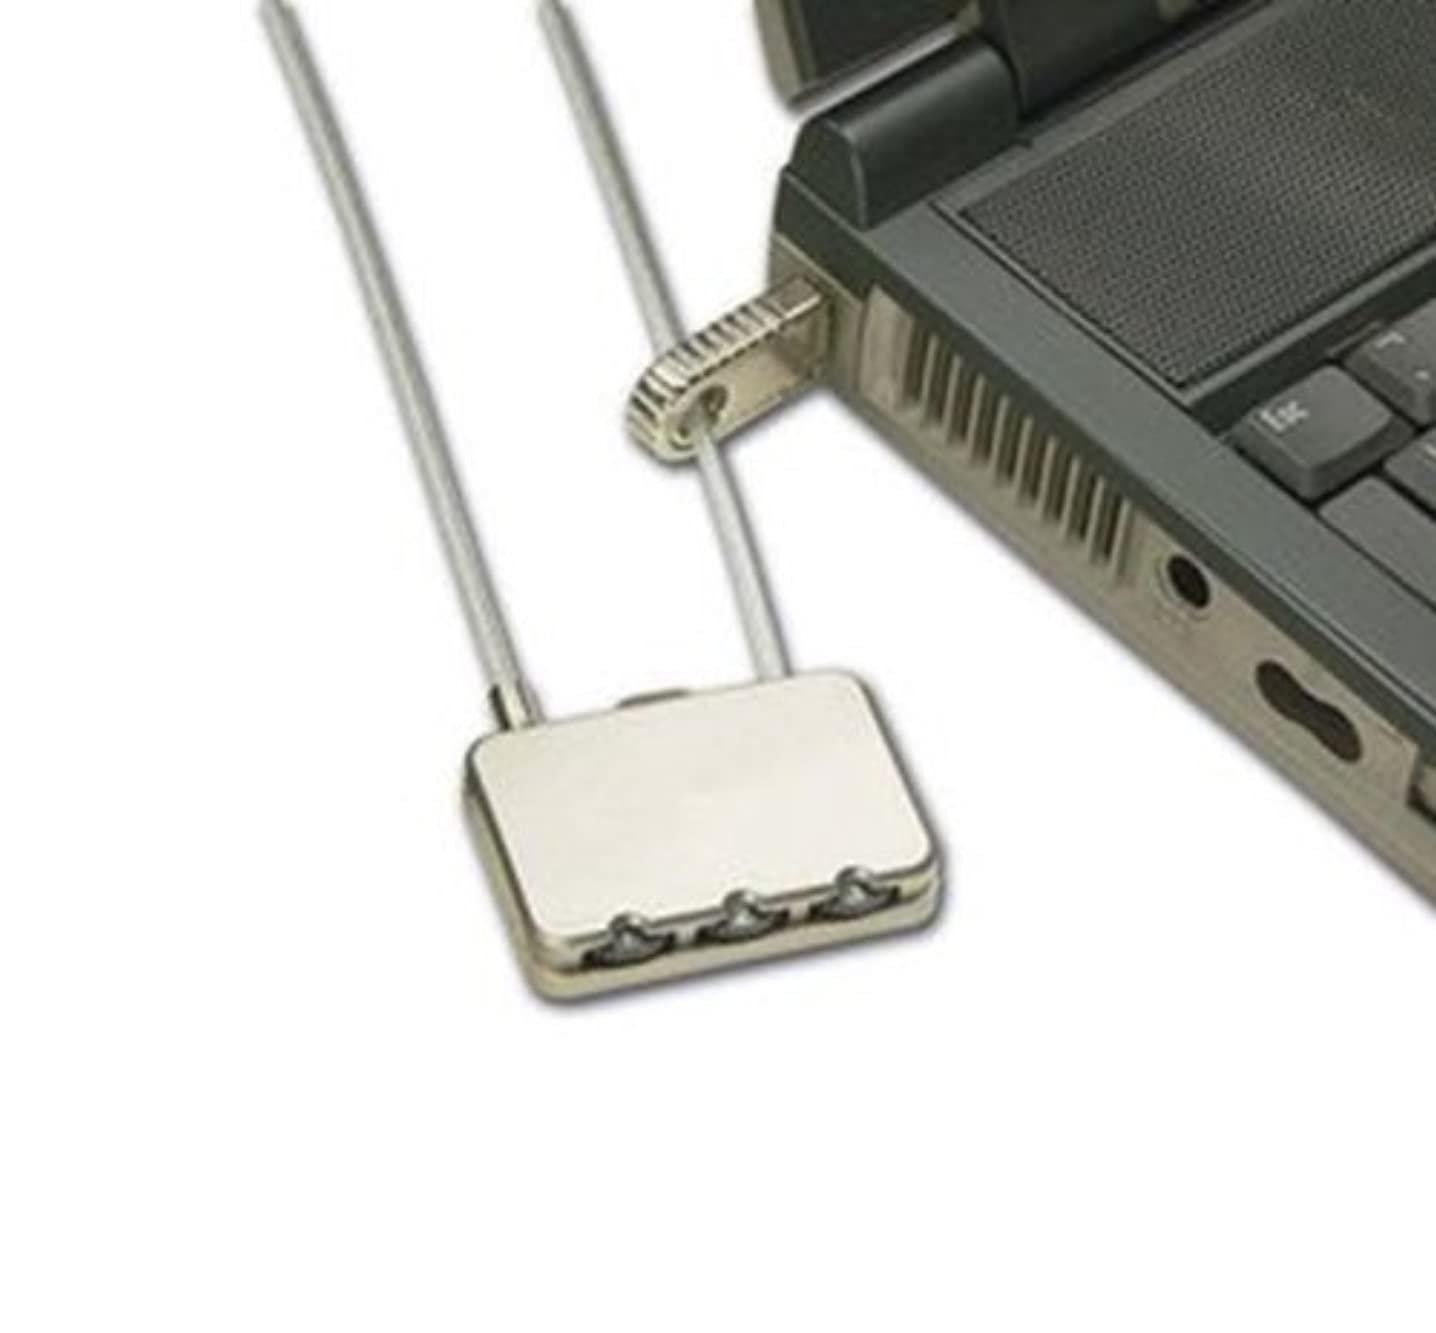 Lindy Notebook Security Cable with Combination Lock (20903)